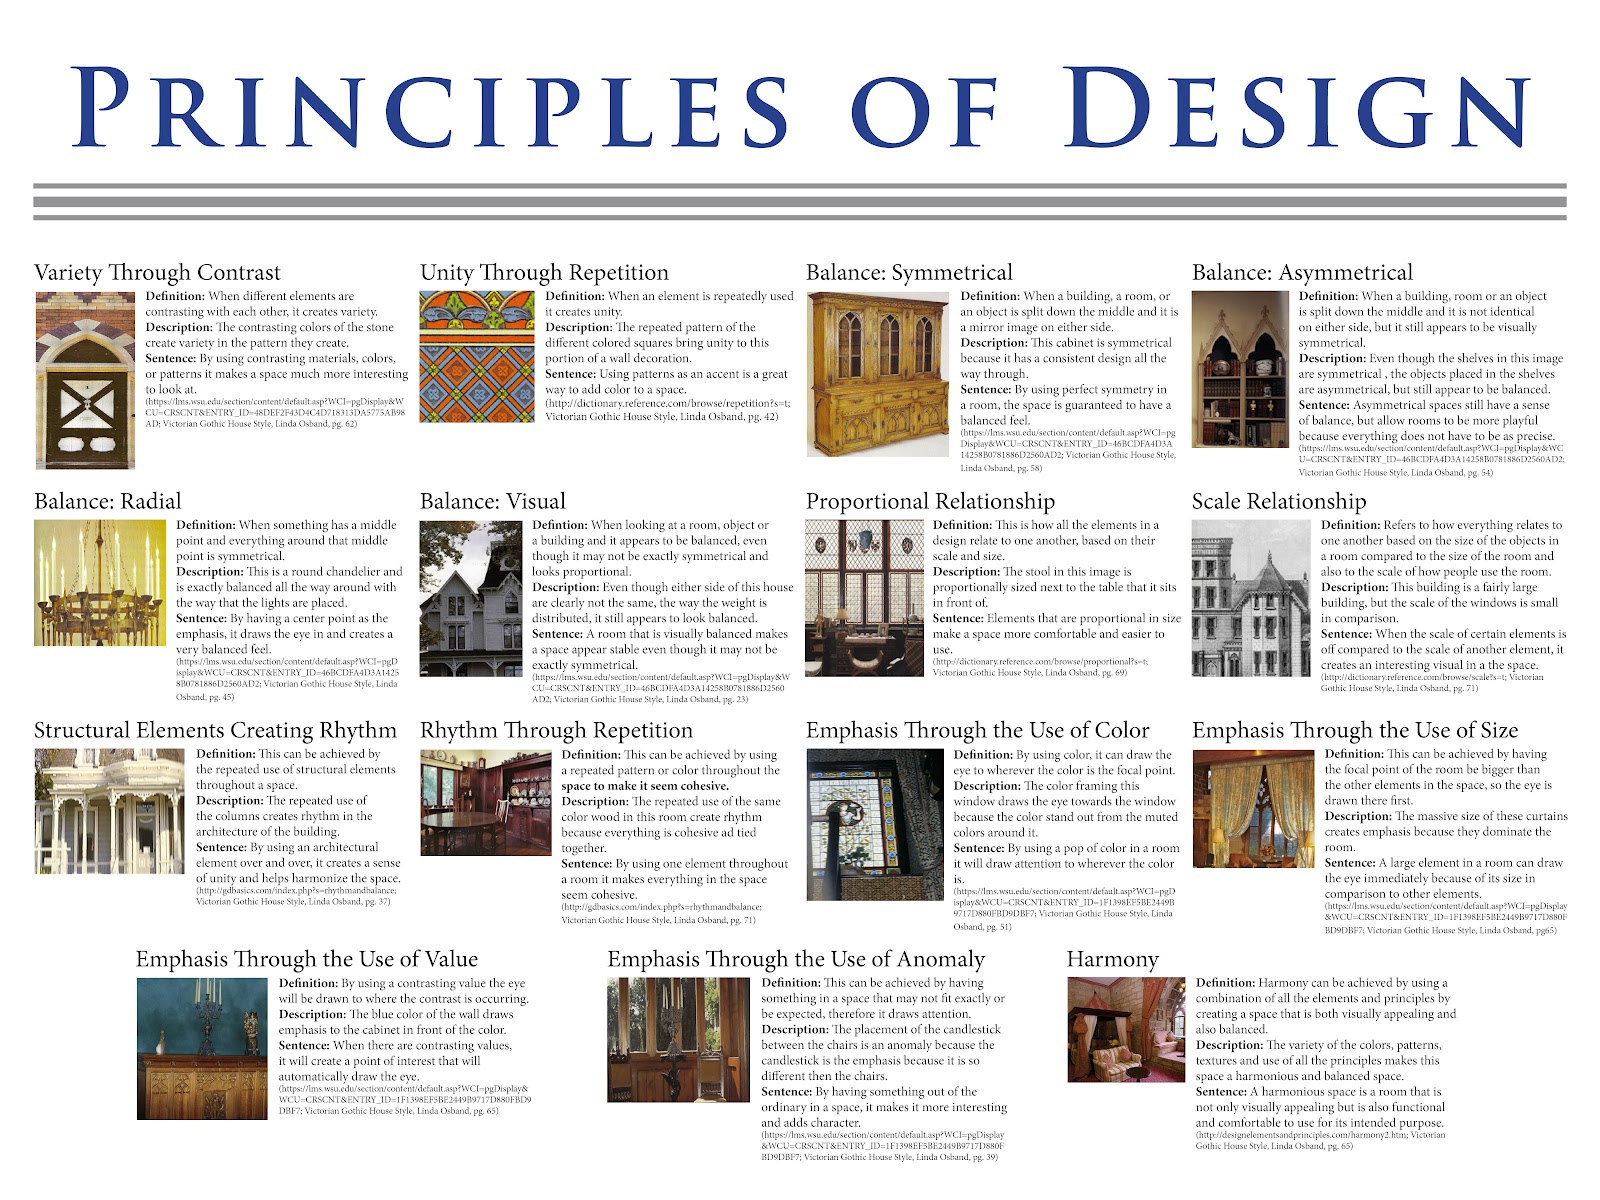 Elements Of Design And Principles Of Design : Principles of design visual communication